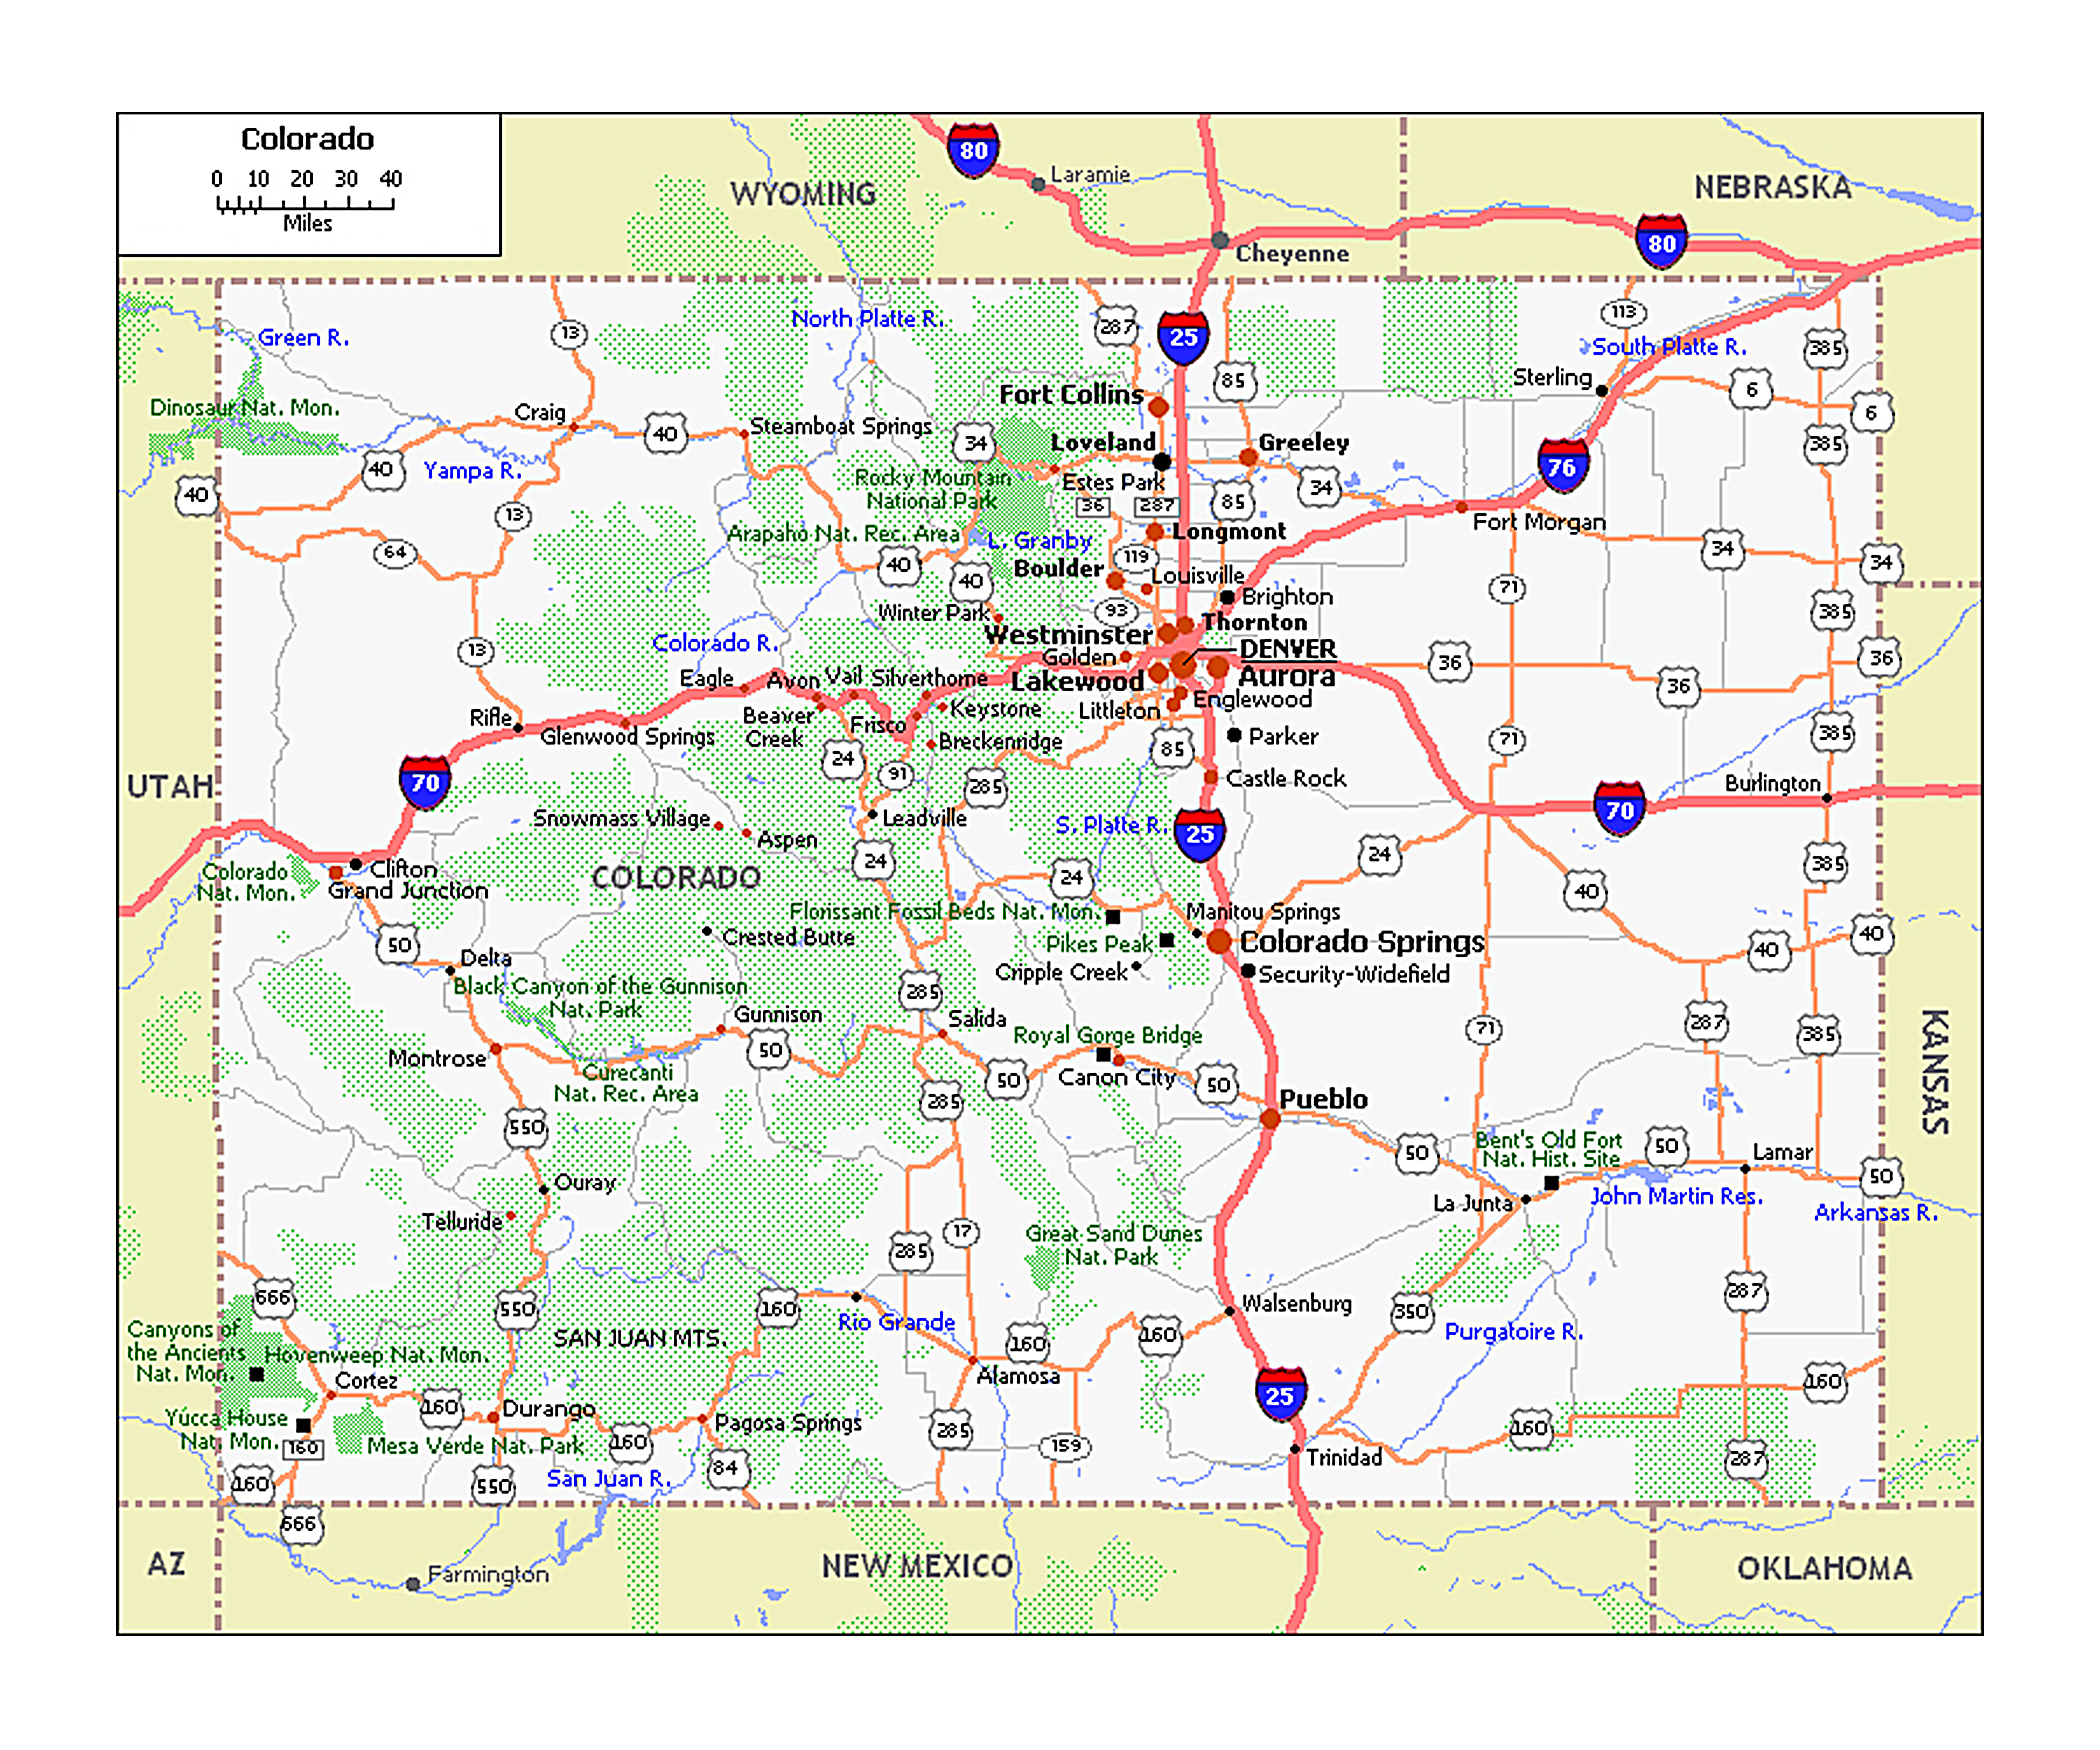 Large roads and highways map of Colorado state | Colorado state